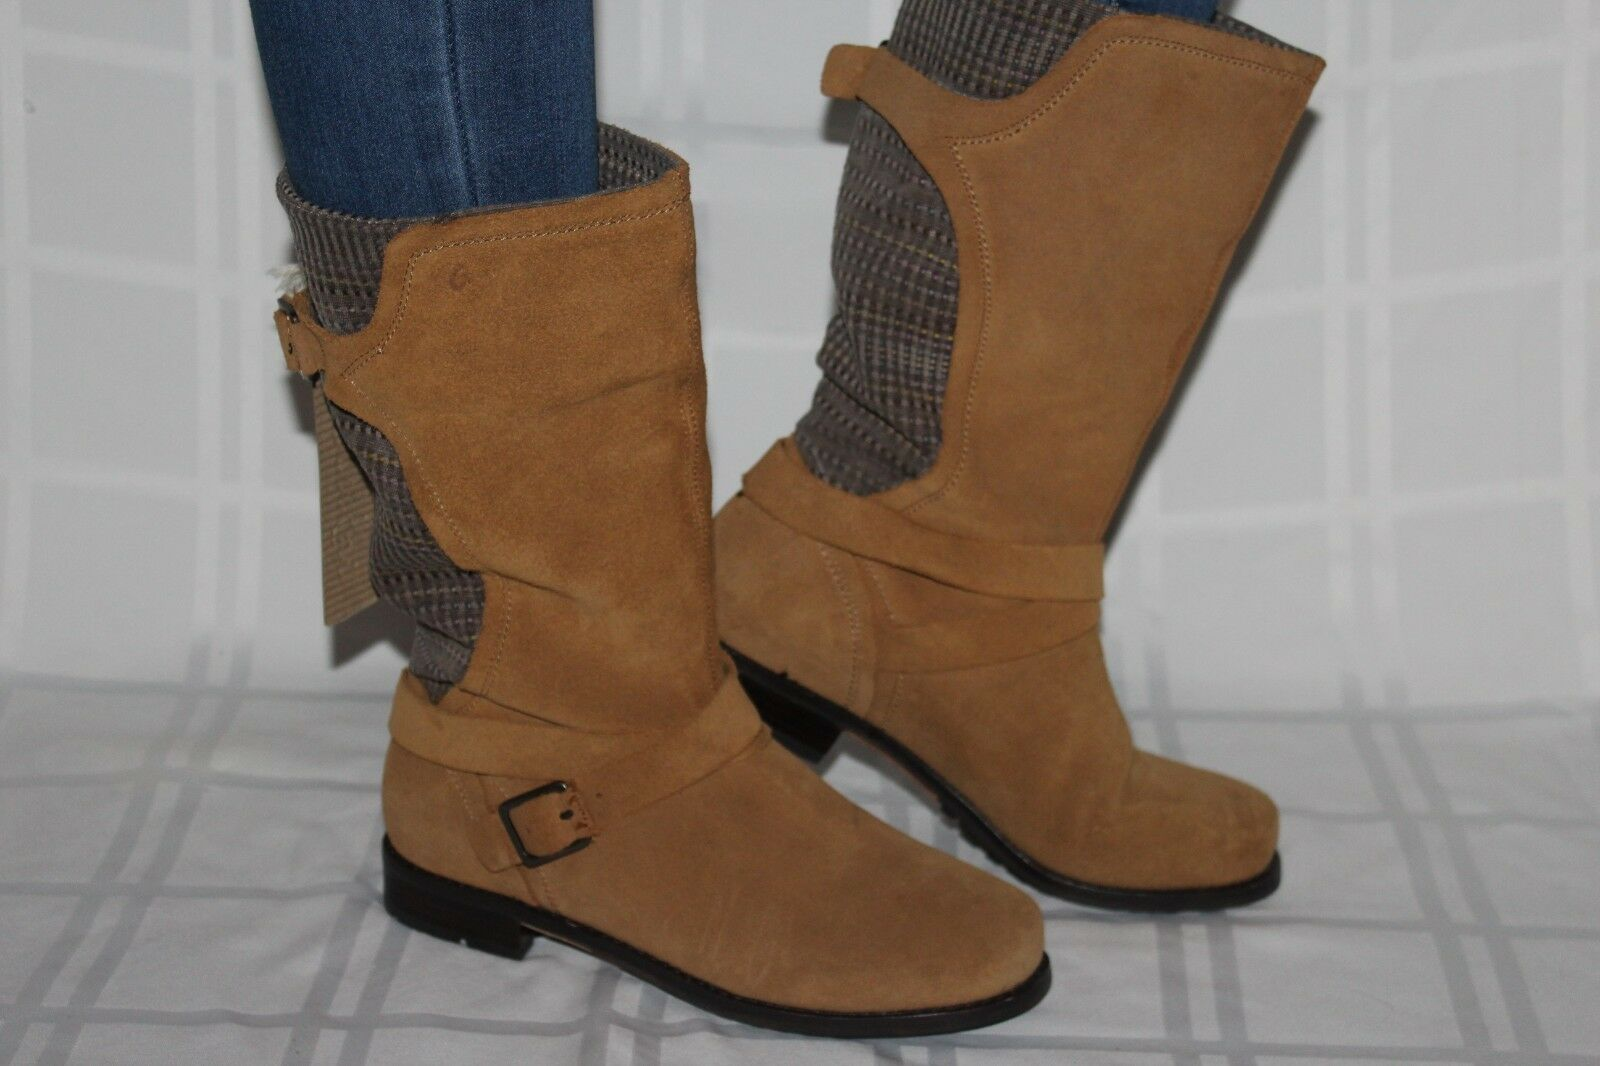 NEW  OLUKAI Cognac Leather PA'IA Mid Calf Harness Pull On Stiefel Sz 8  225